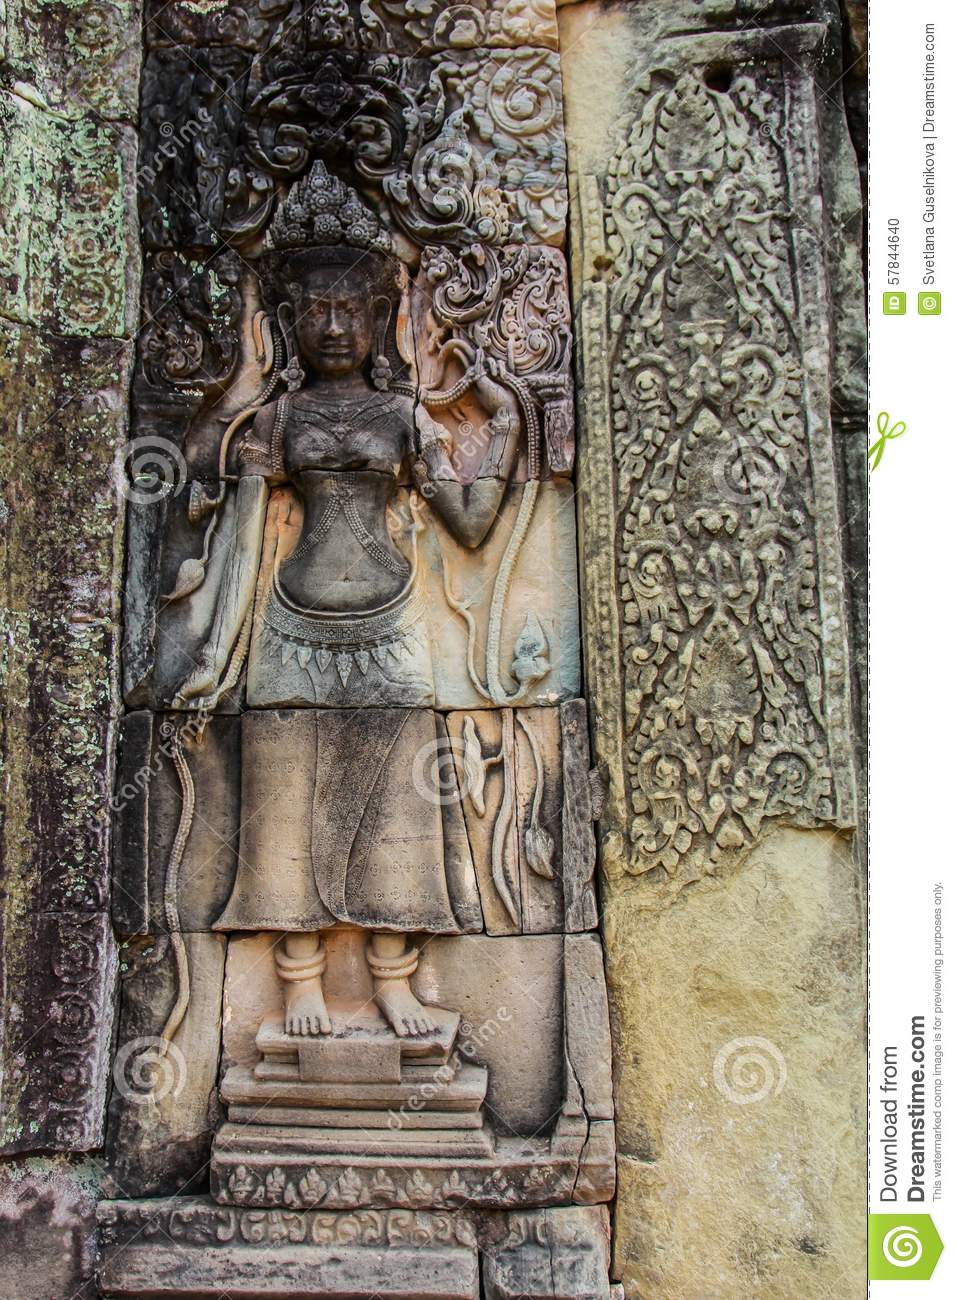 Detail of stone carvings in angkor wat cambodia